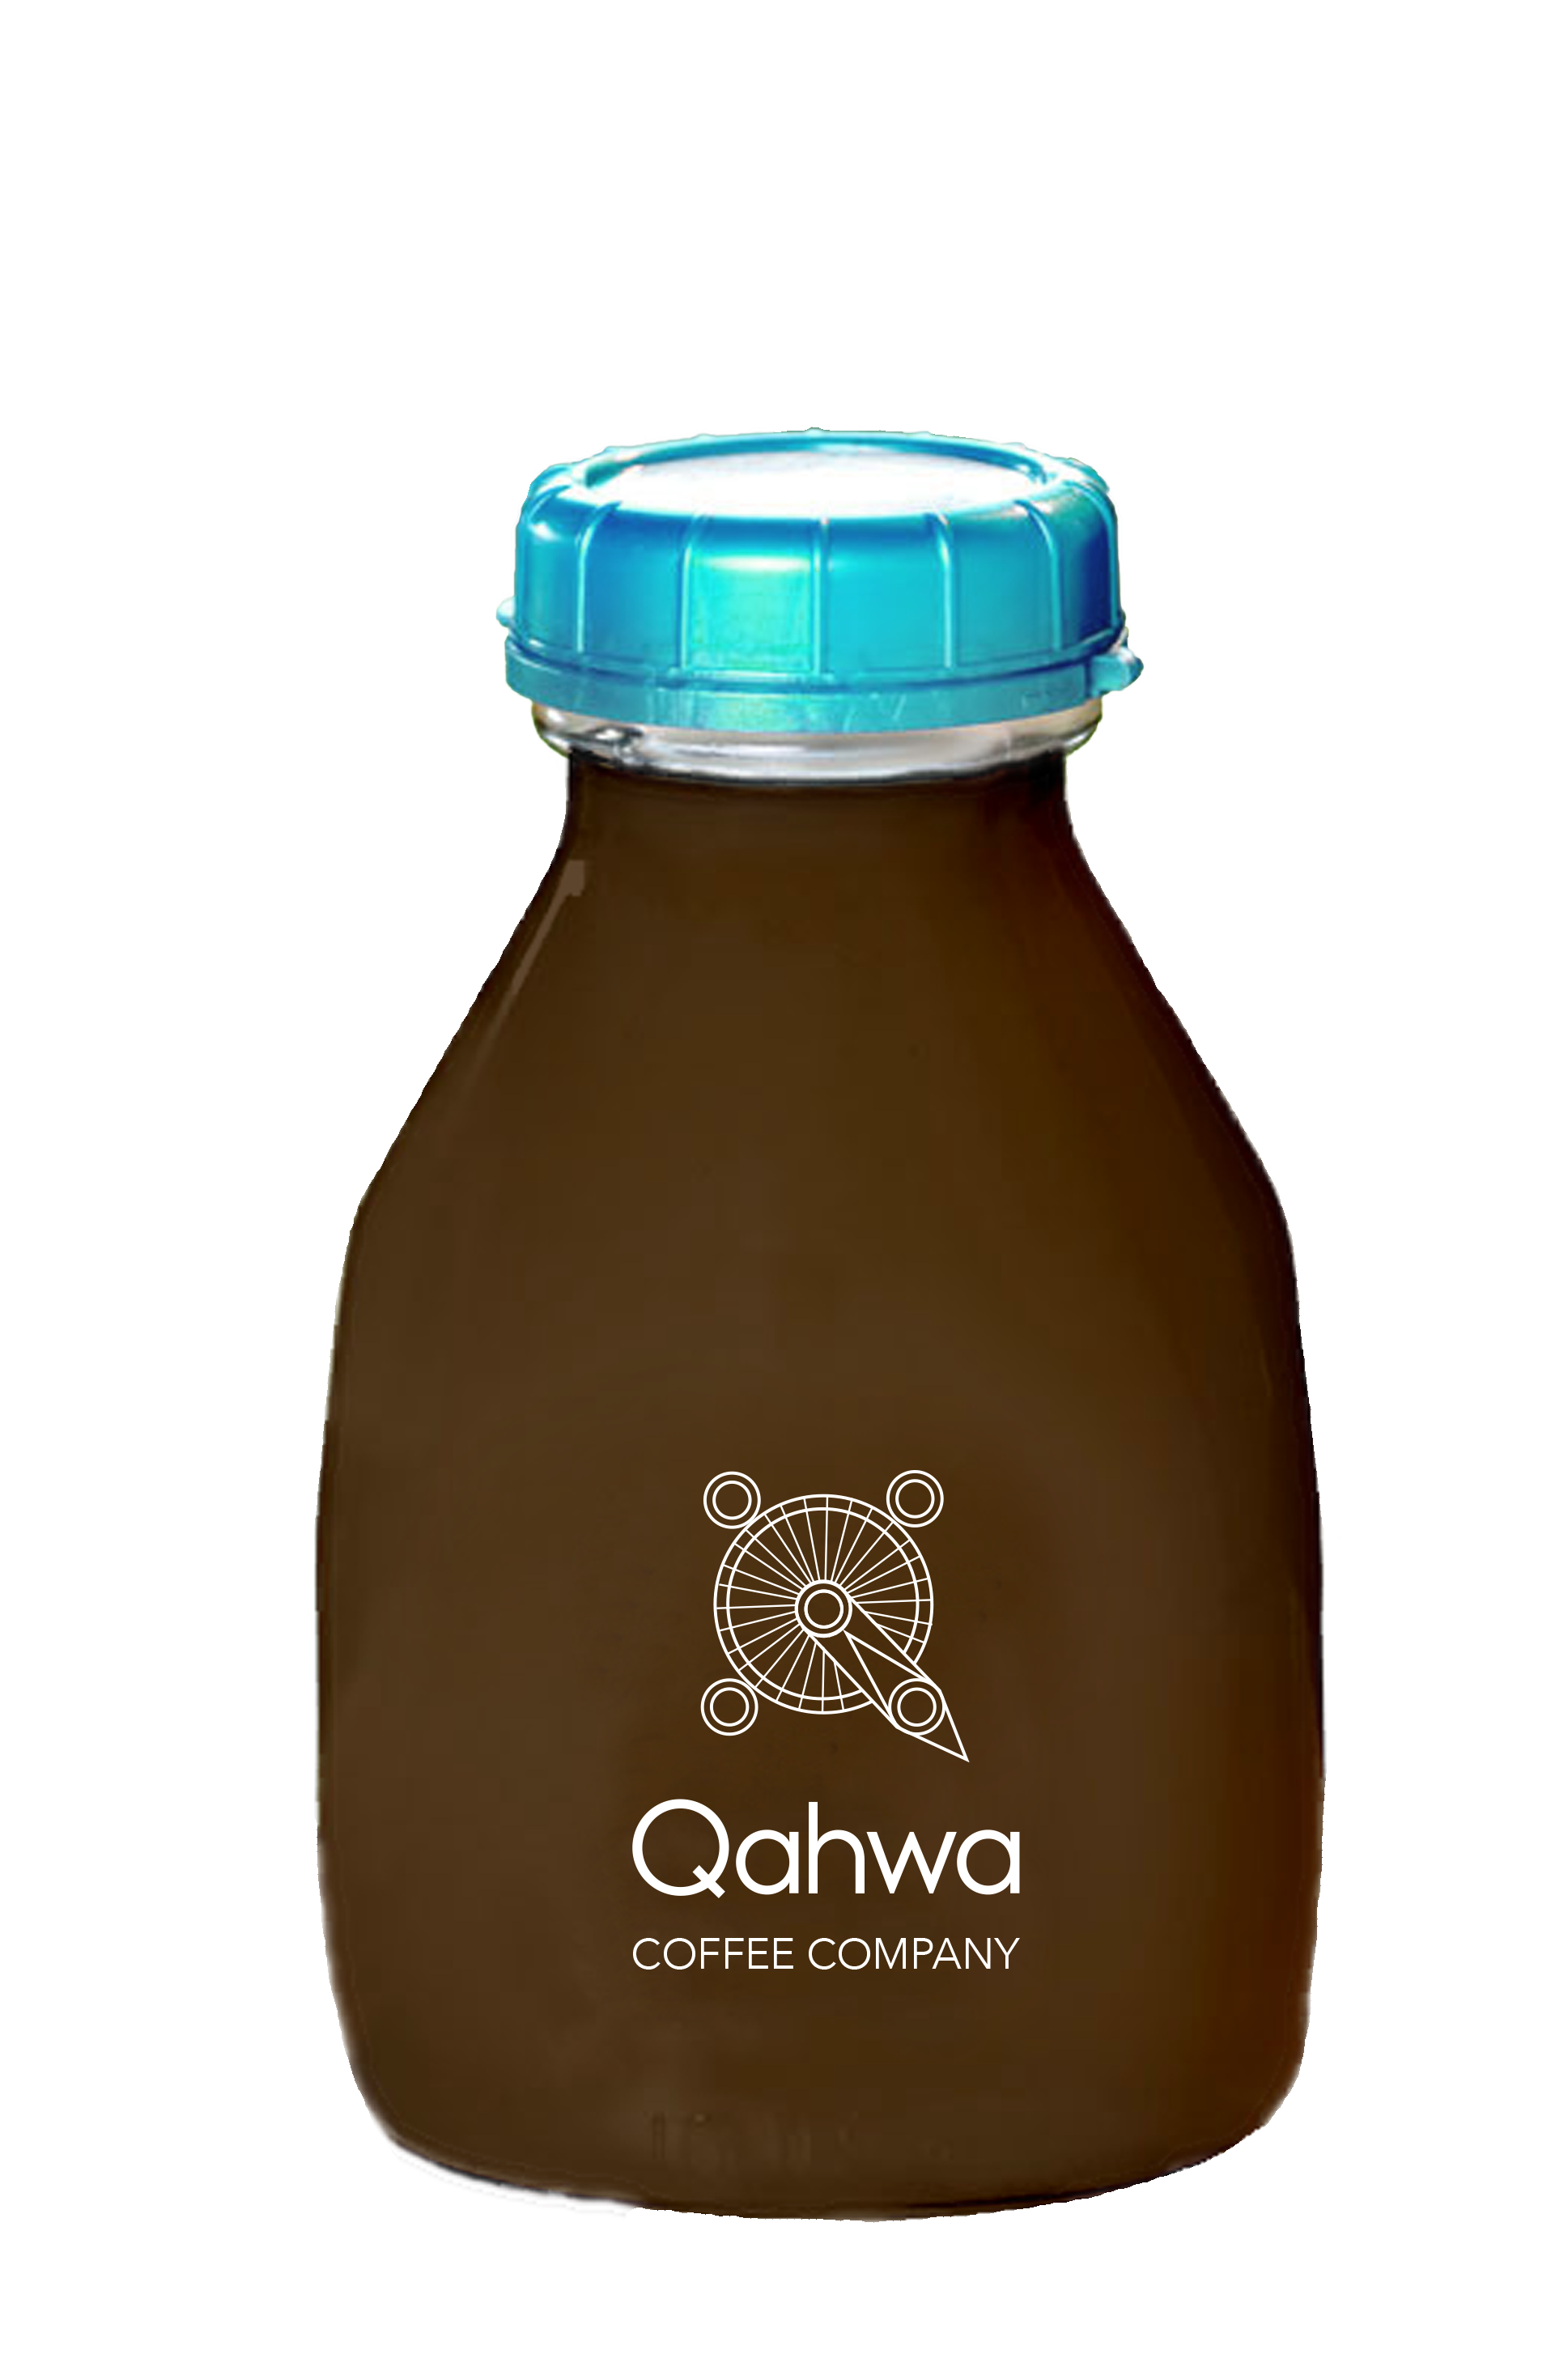 qahwa photo mockup transparent background.png